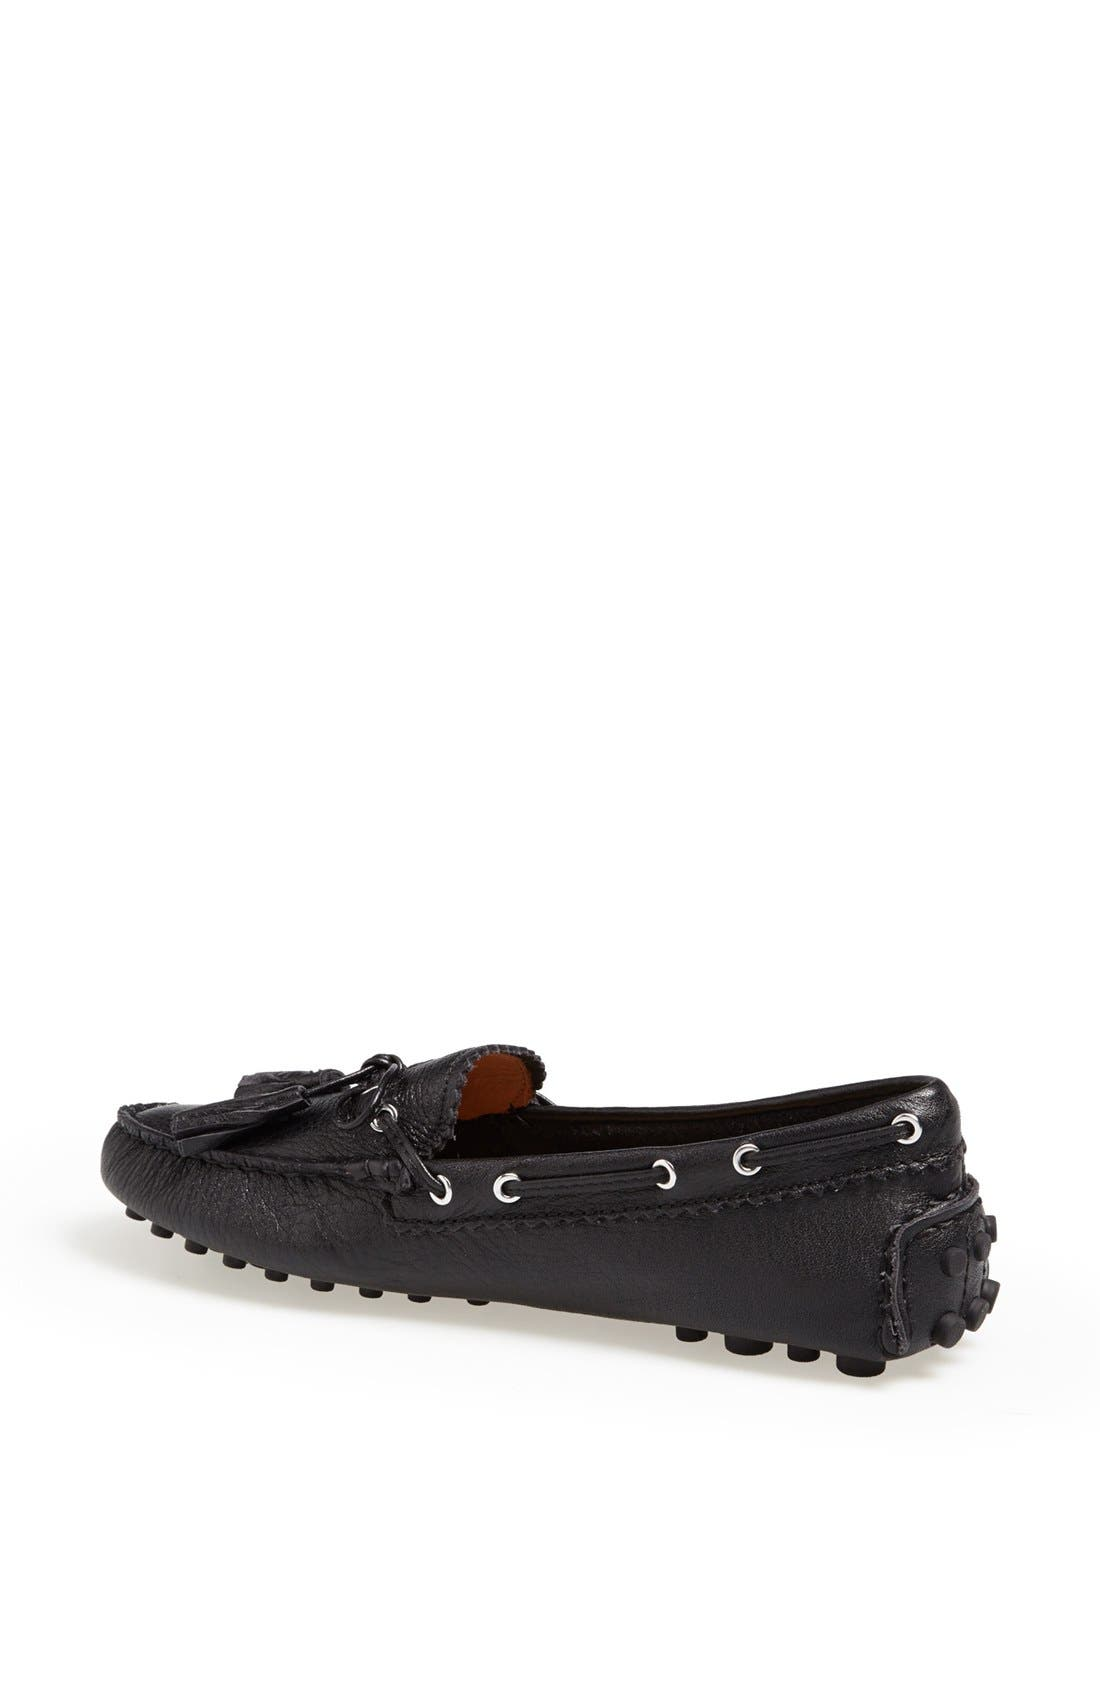 'Nadia' Leather Driving Loafer,                             Alternate thumbnail 2, color,                             001